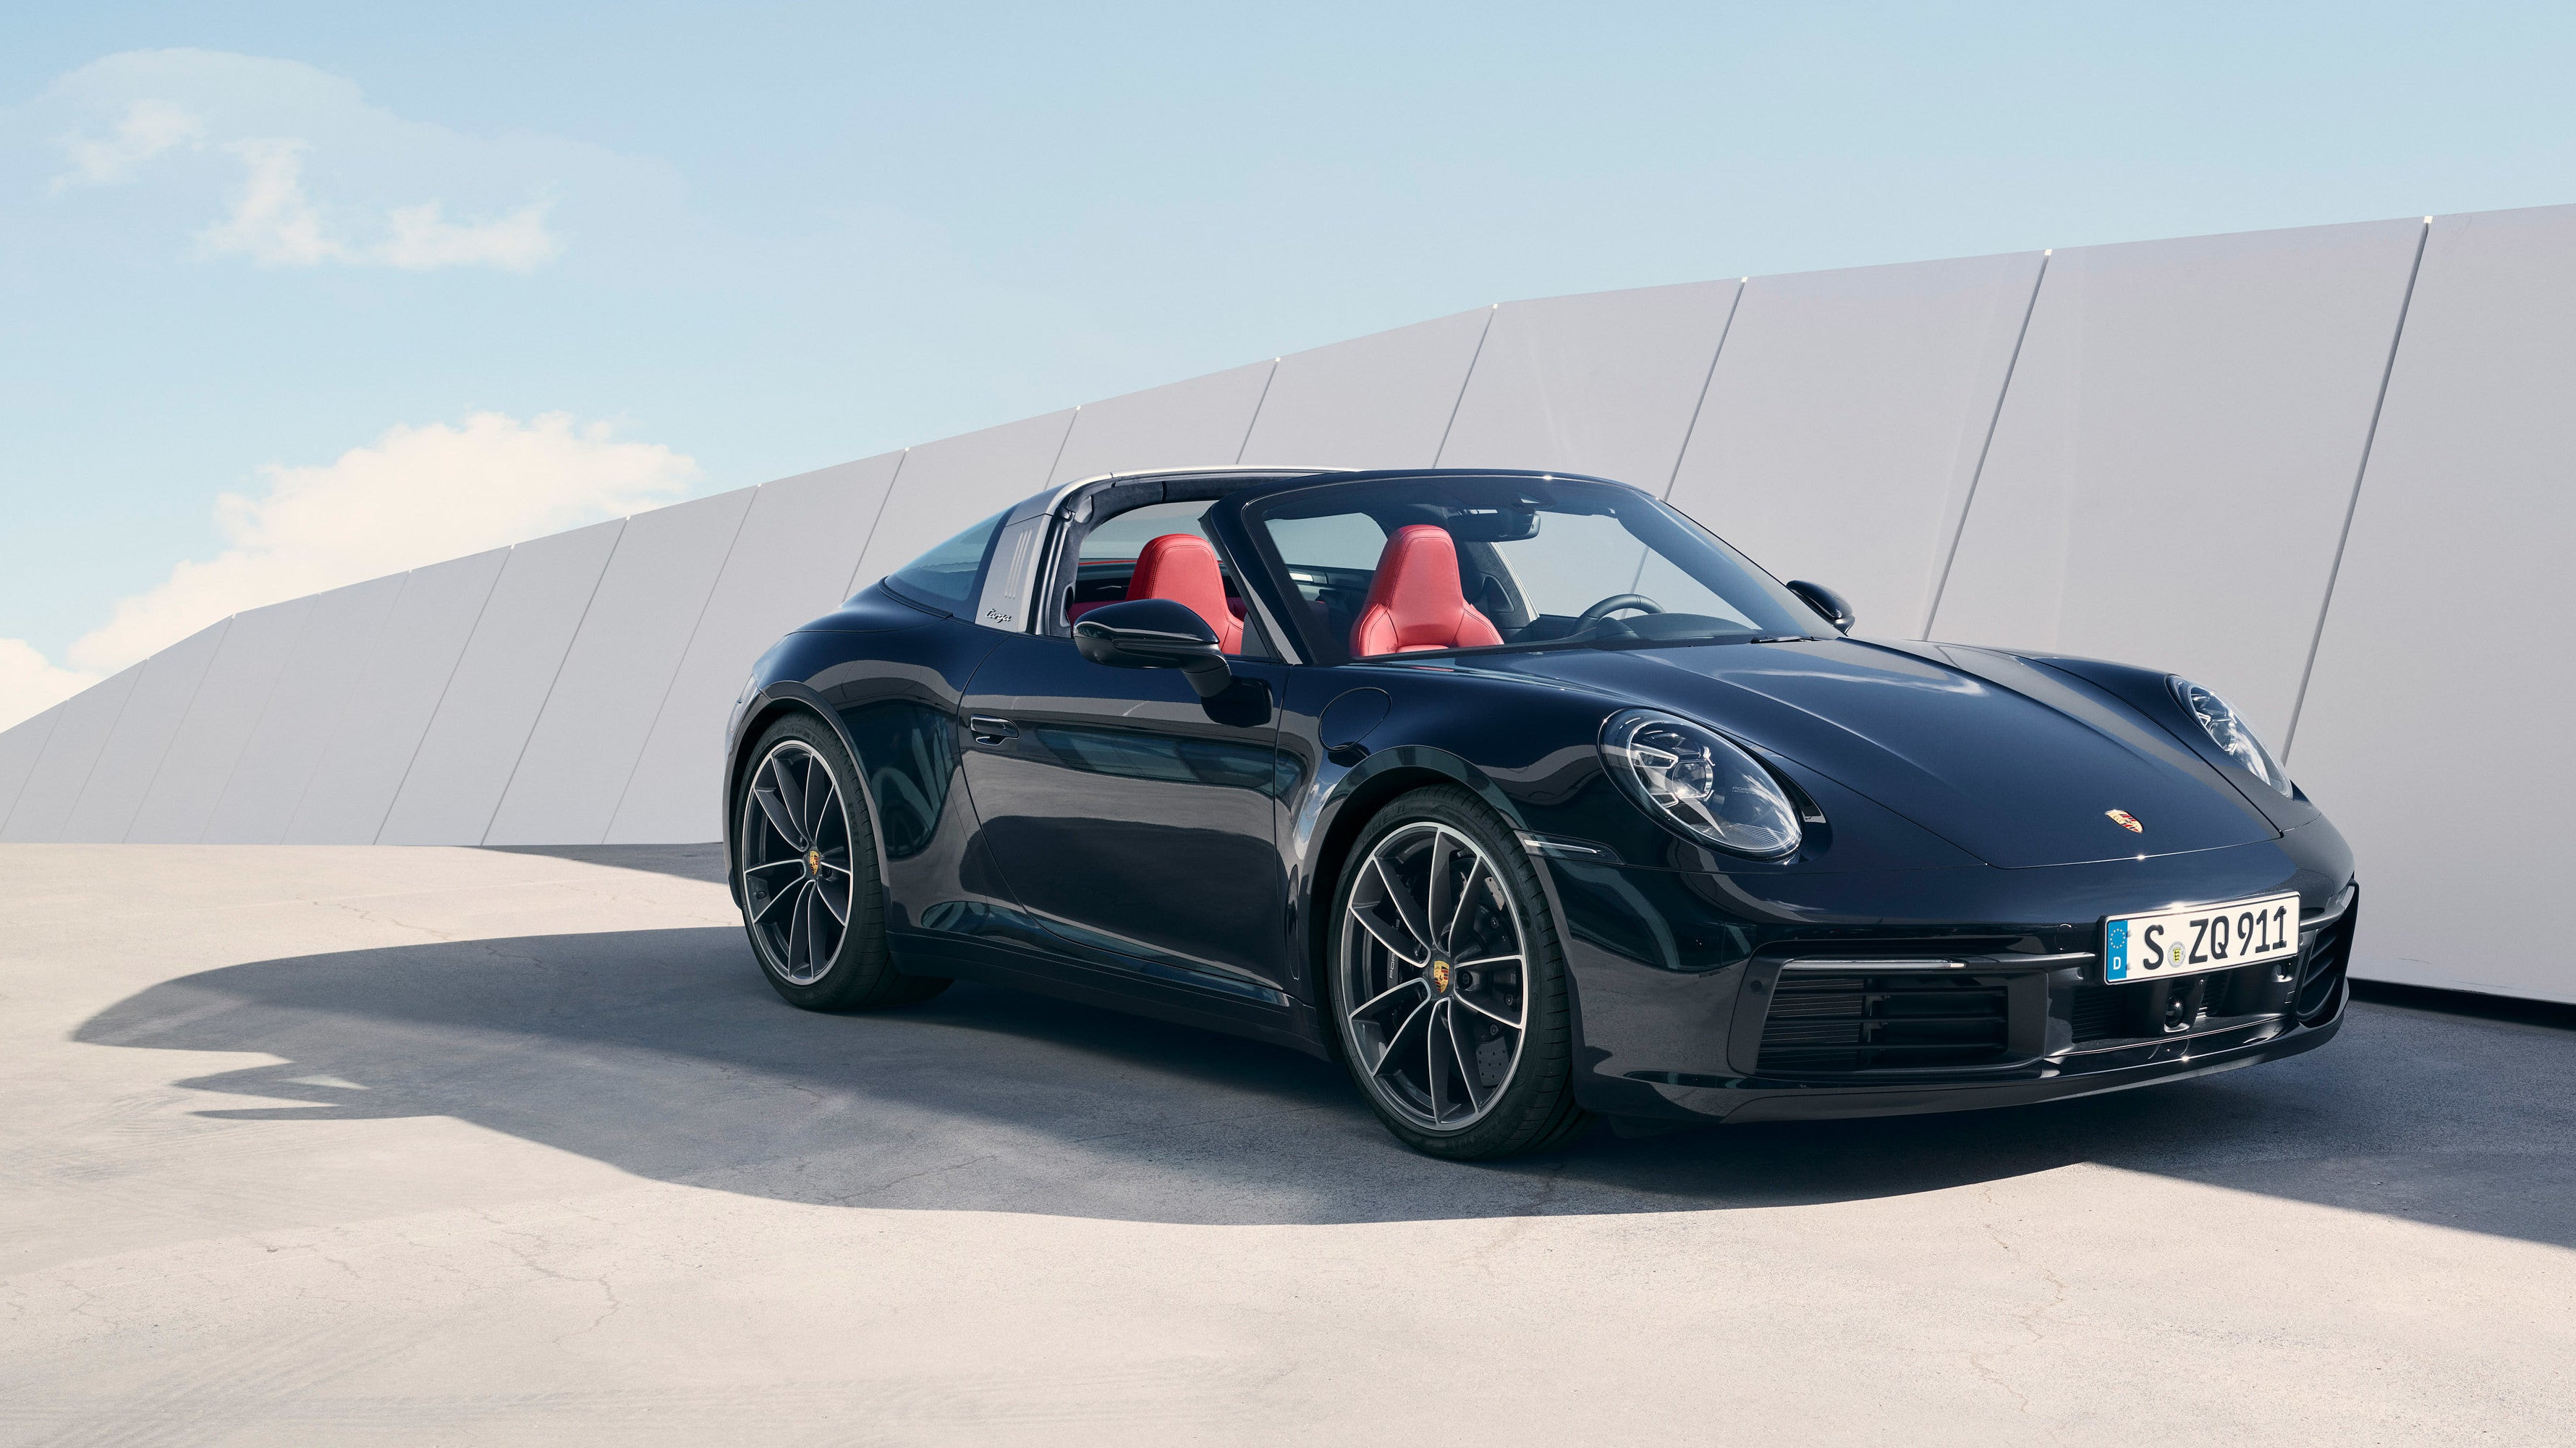 The 2021 Porsche 911 Targa Takes 7 More Seconds To Drop Its Roof Than A Regular Cabriolet